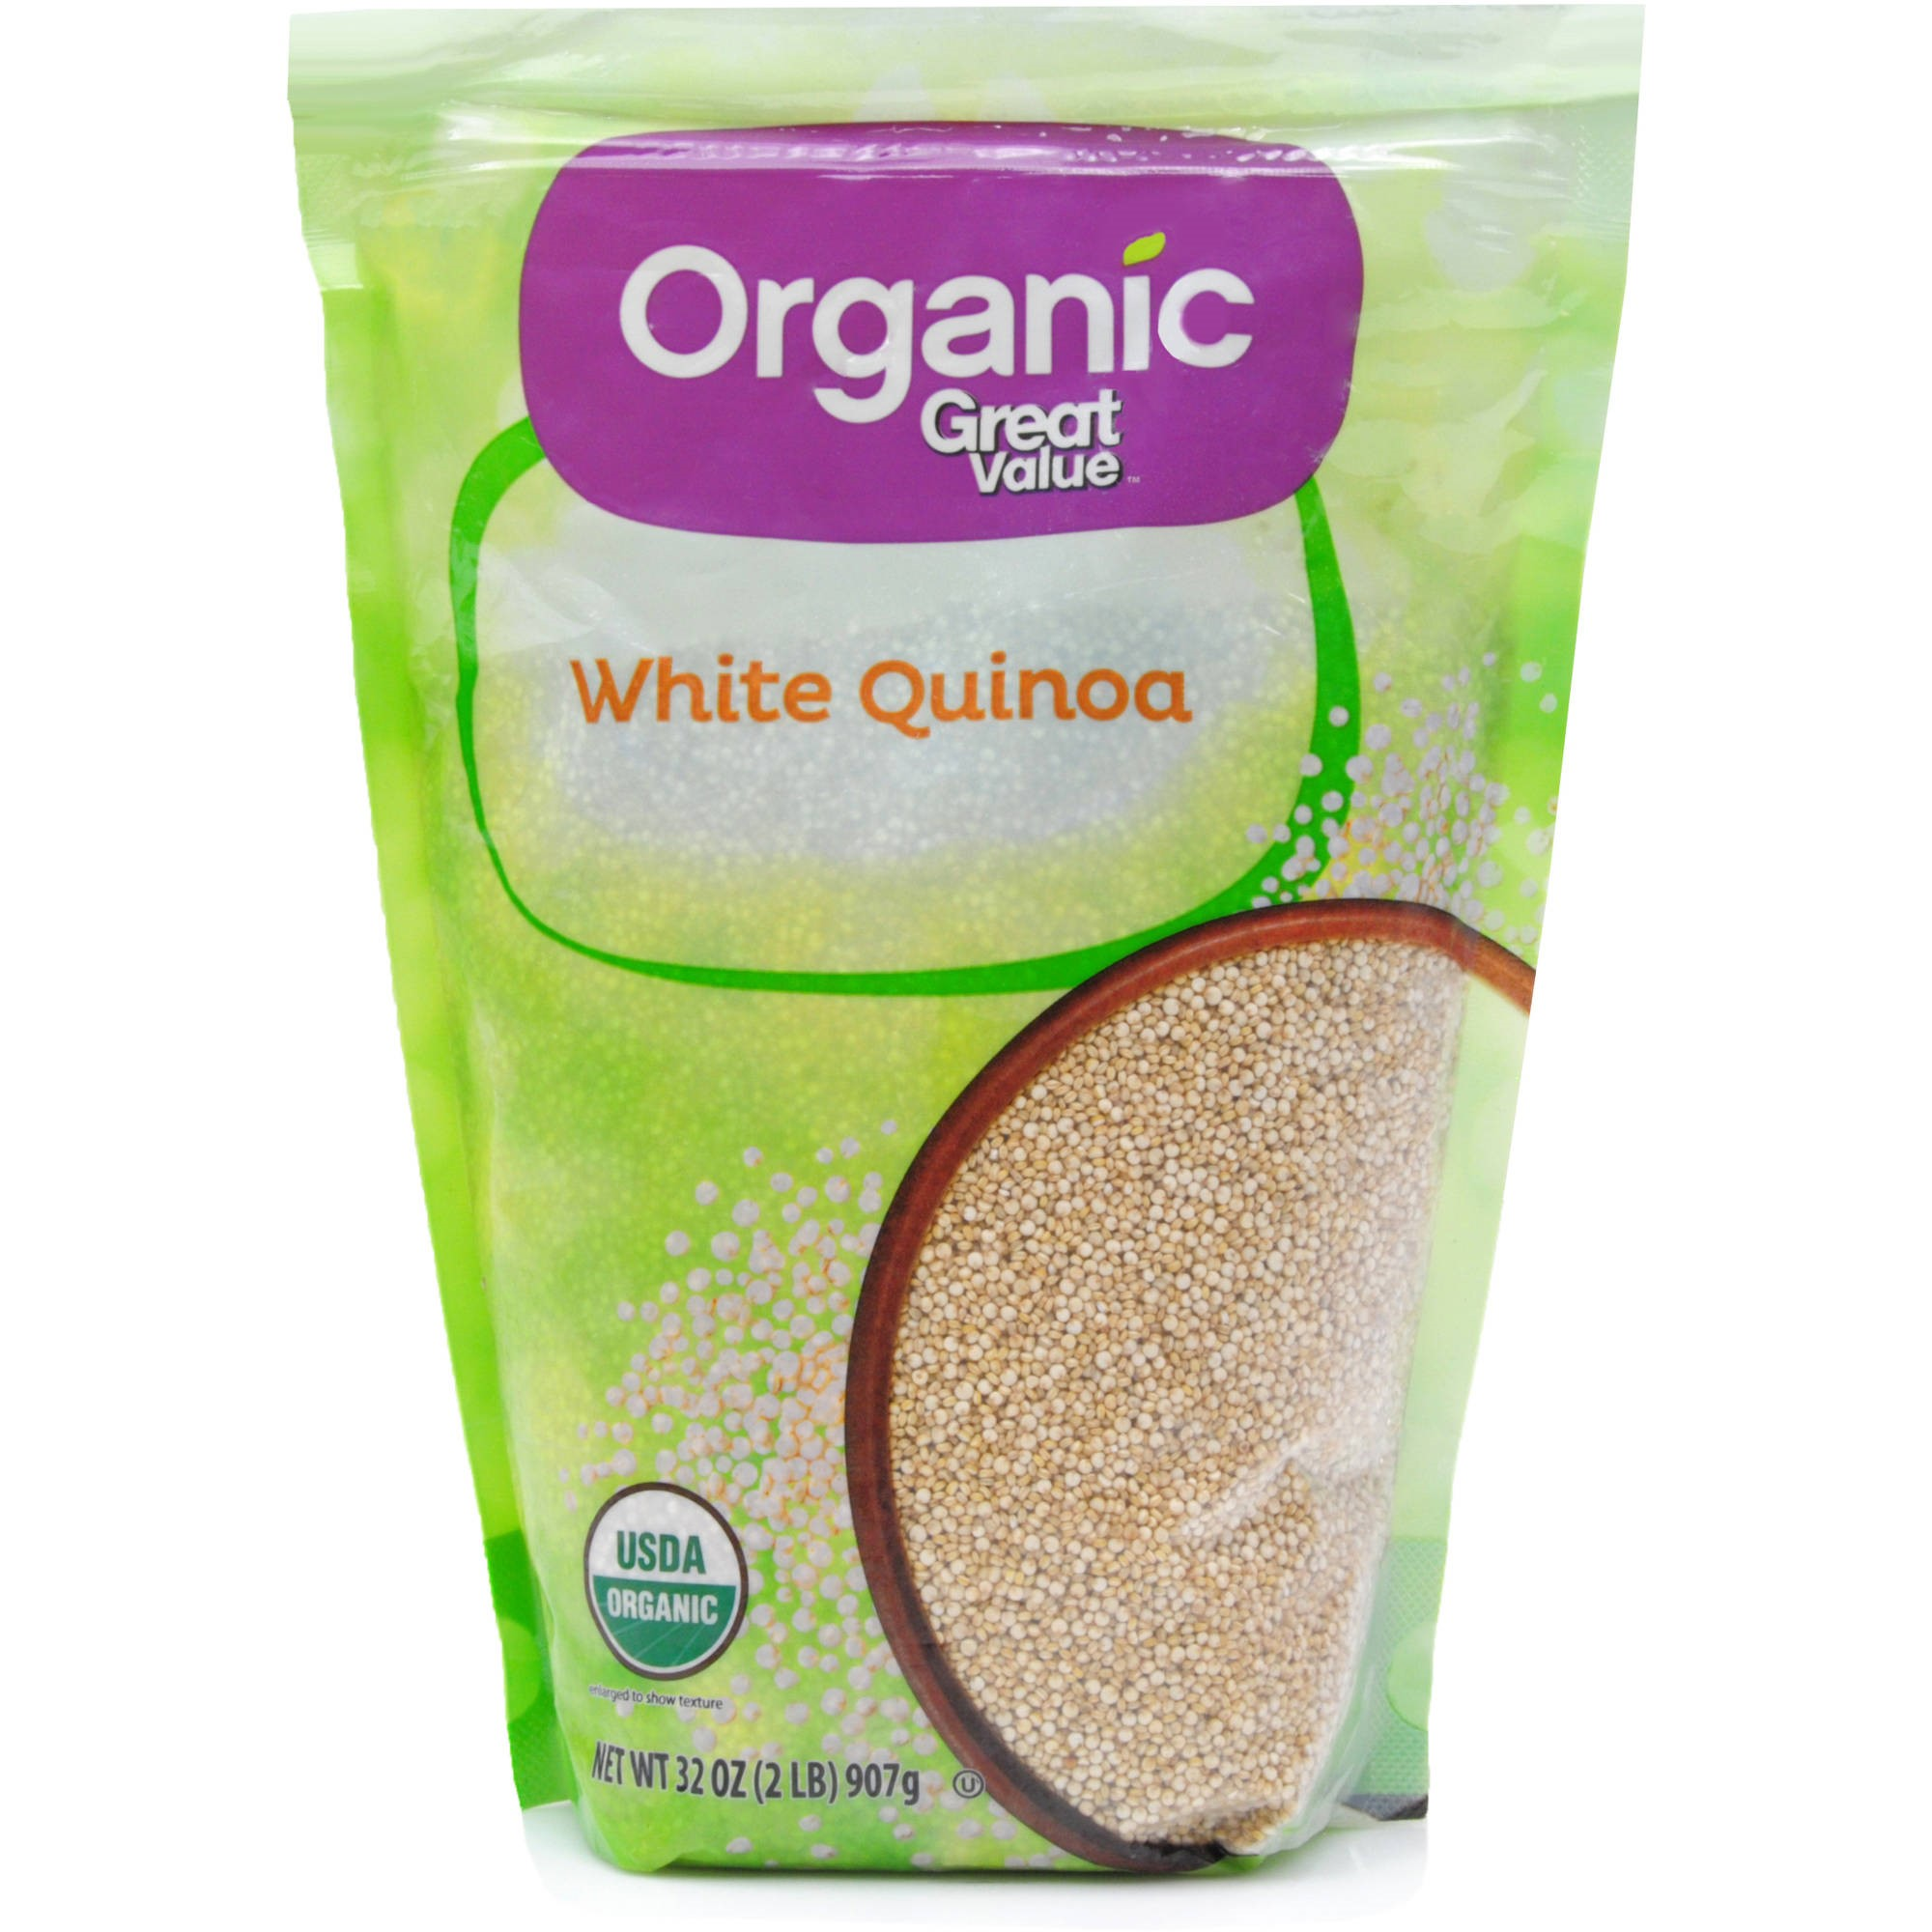 Great Value Organic White Quinoa, 32 oz